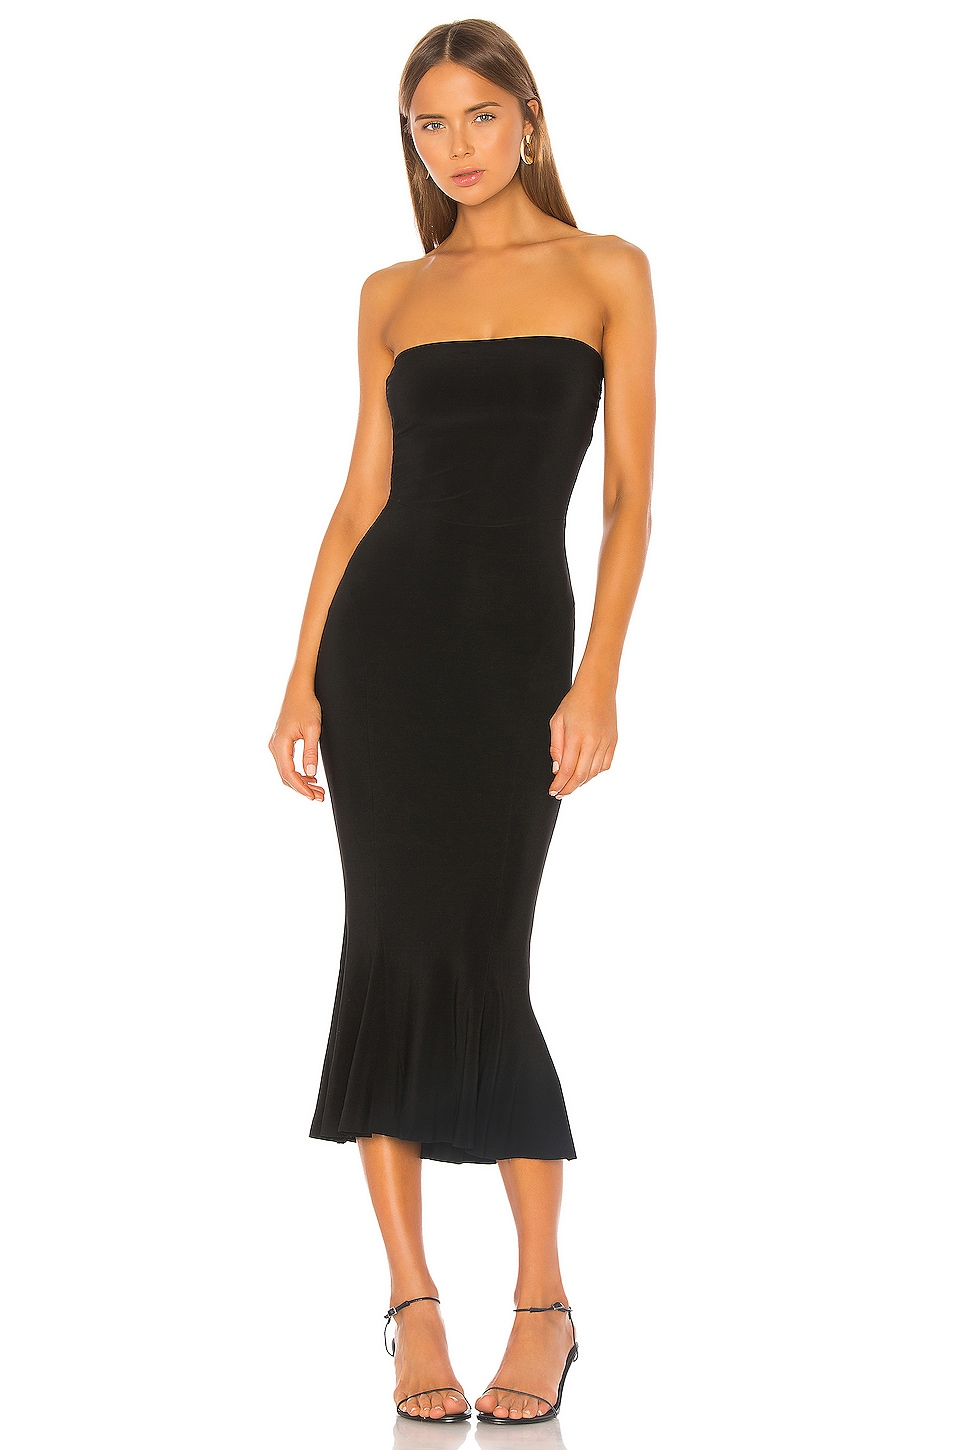 Norma Kamali Strapless Fishtail Dress in Black